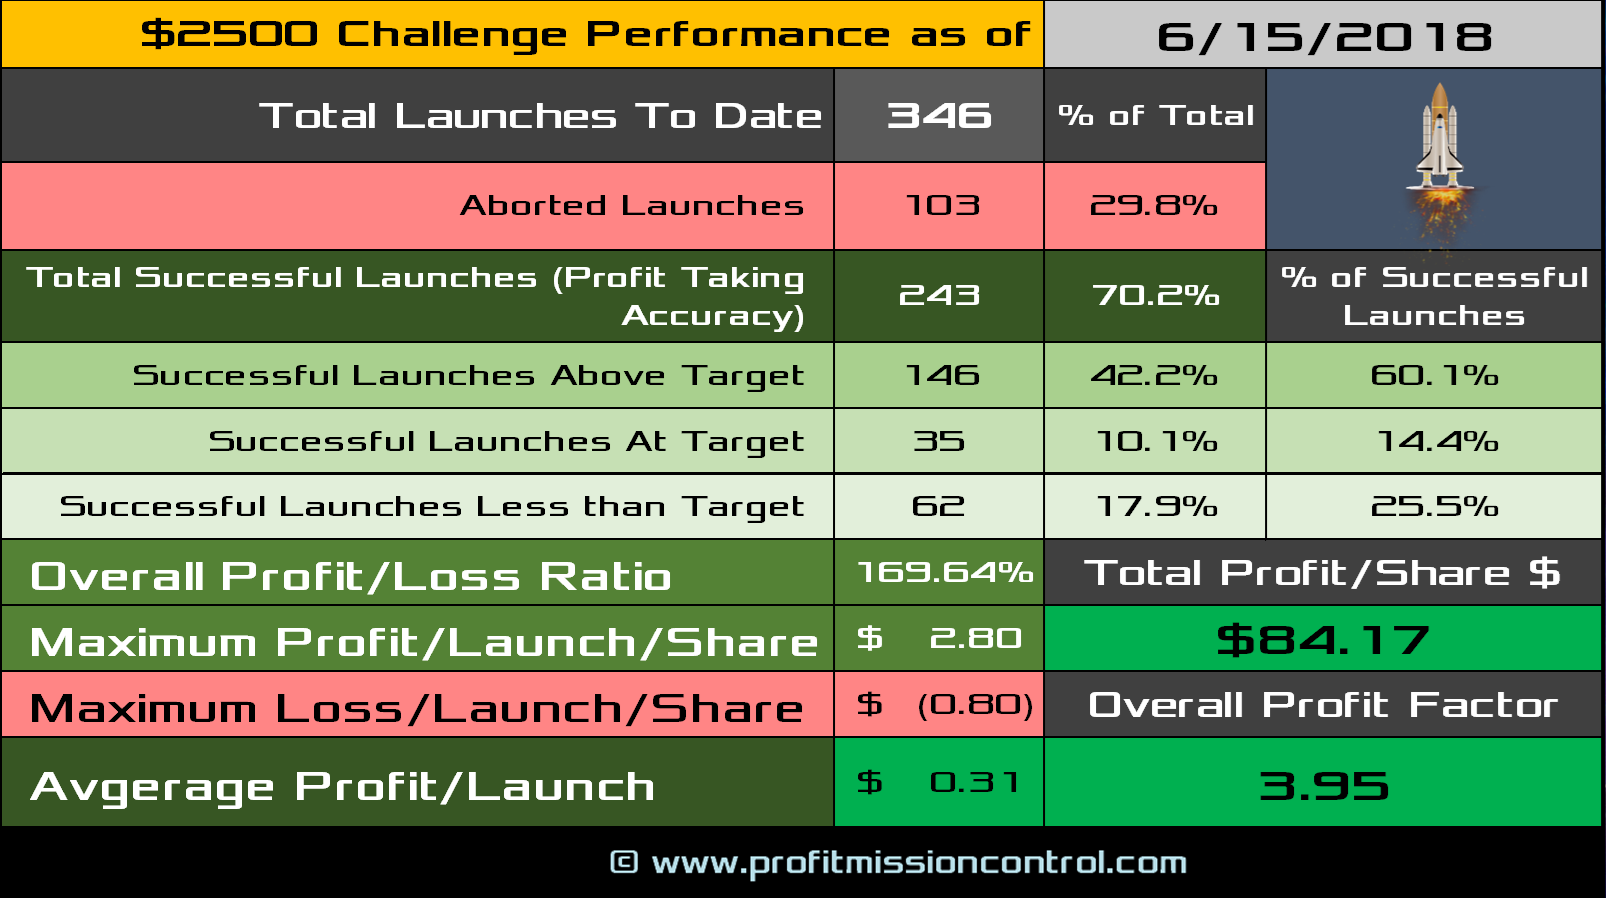 performance card 06-15-2018